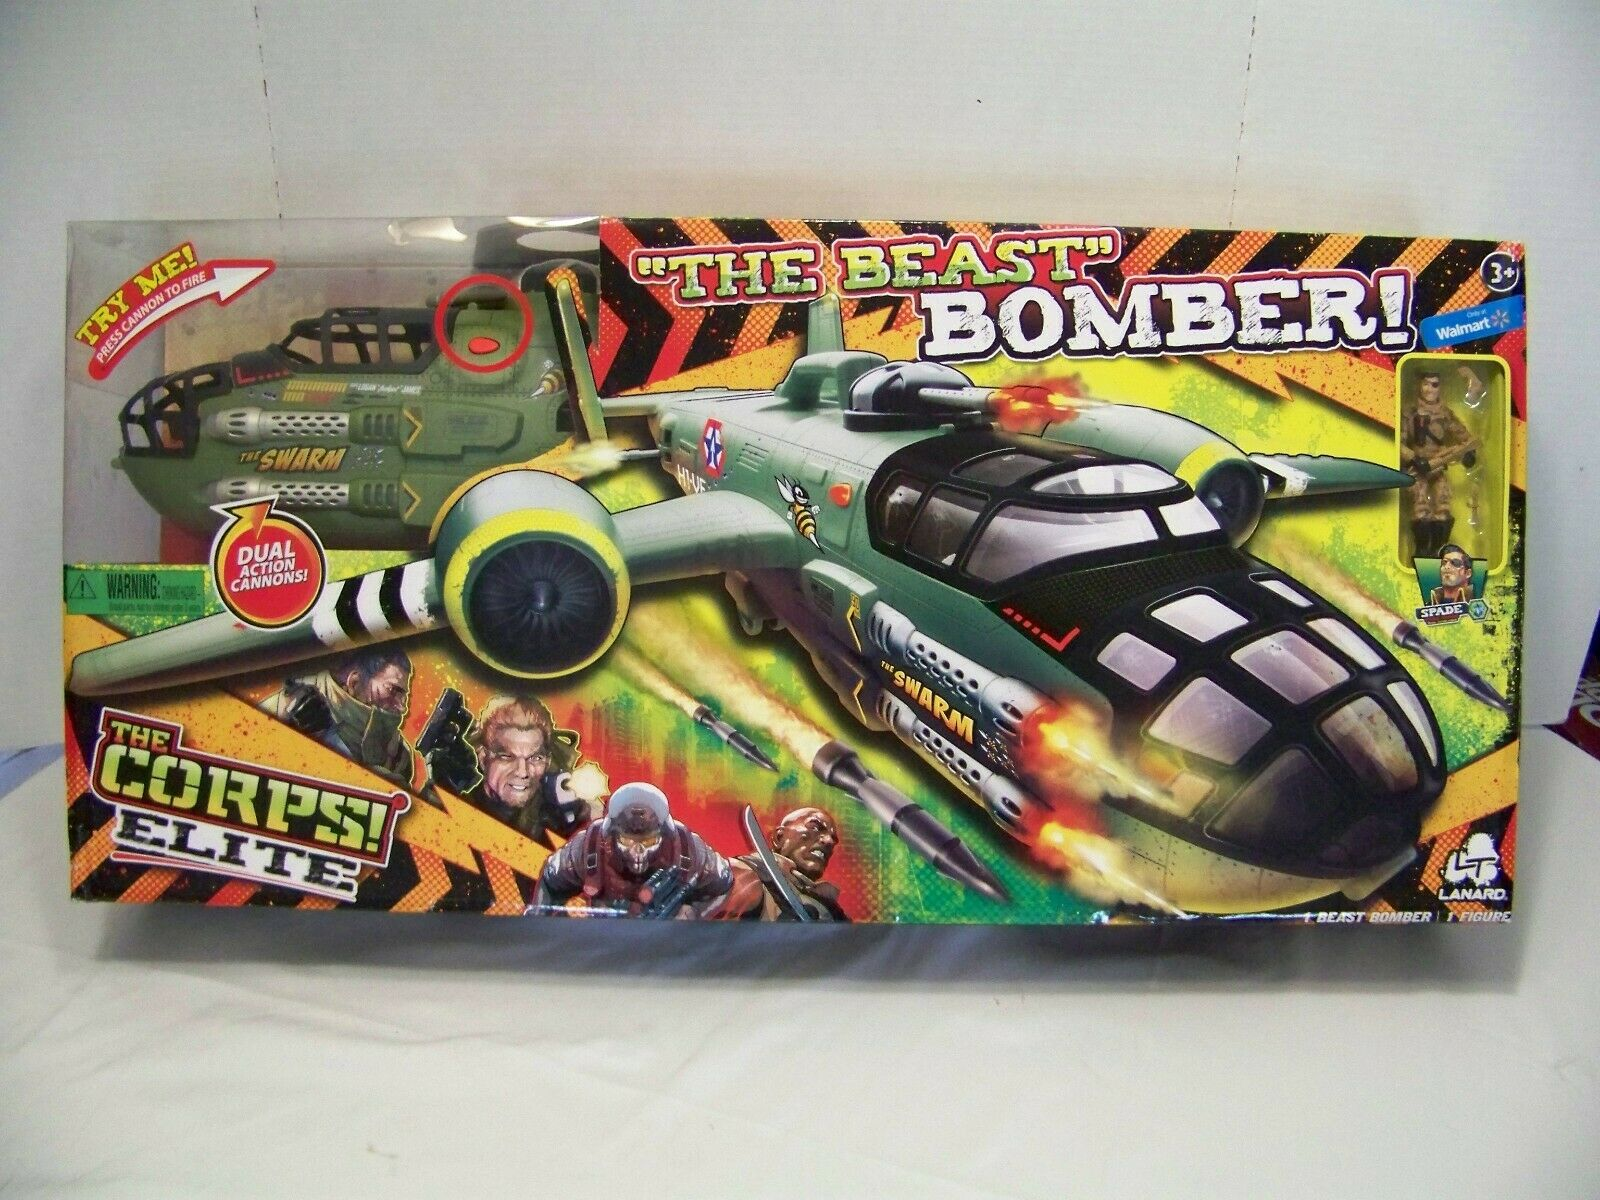 NEW LANARD THE CORPS ELITE THE BEAST BOMBER THE SWARM verde VERSION  ELECTRONIC